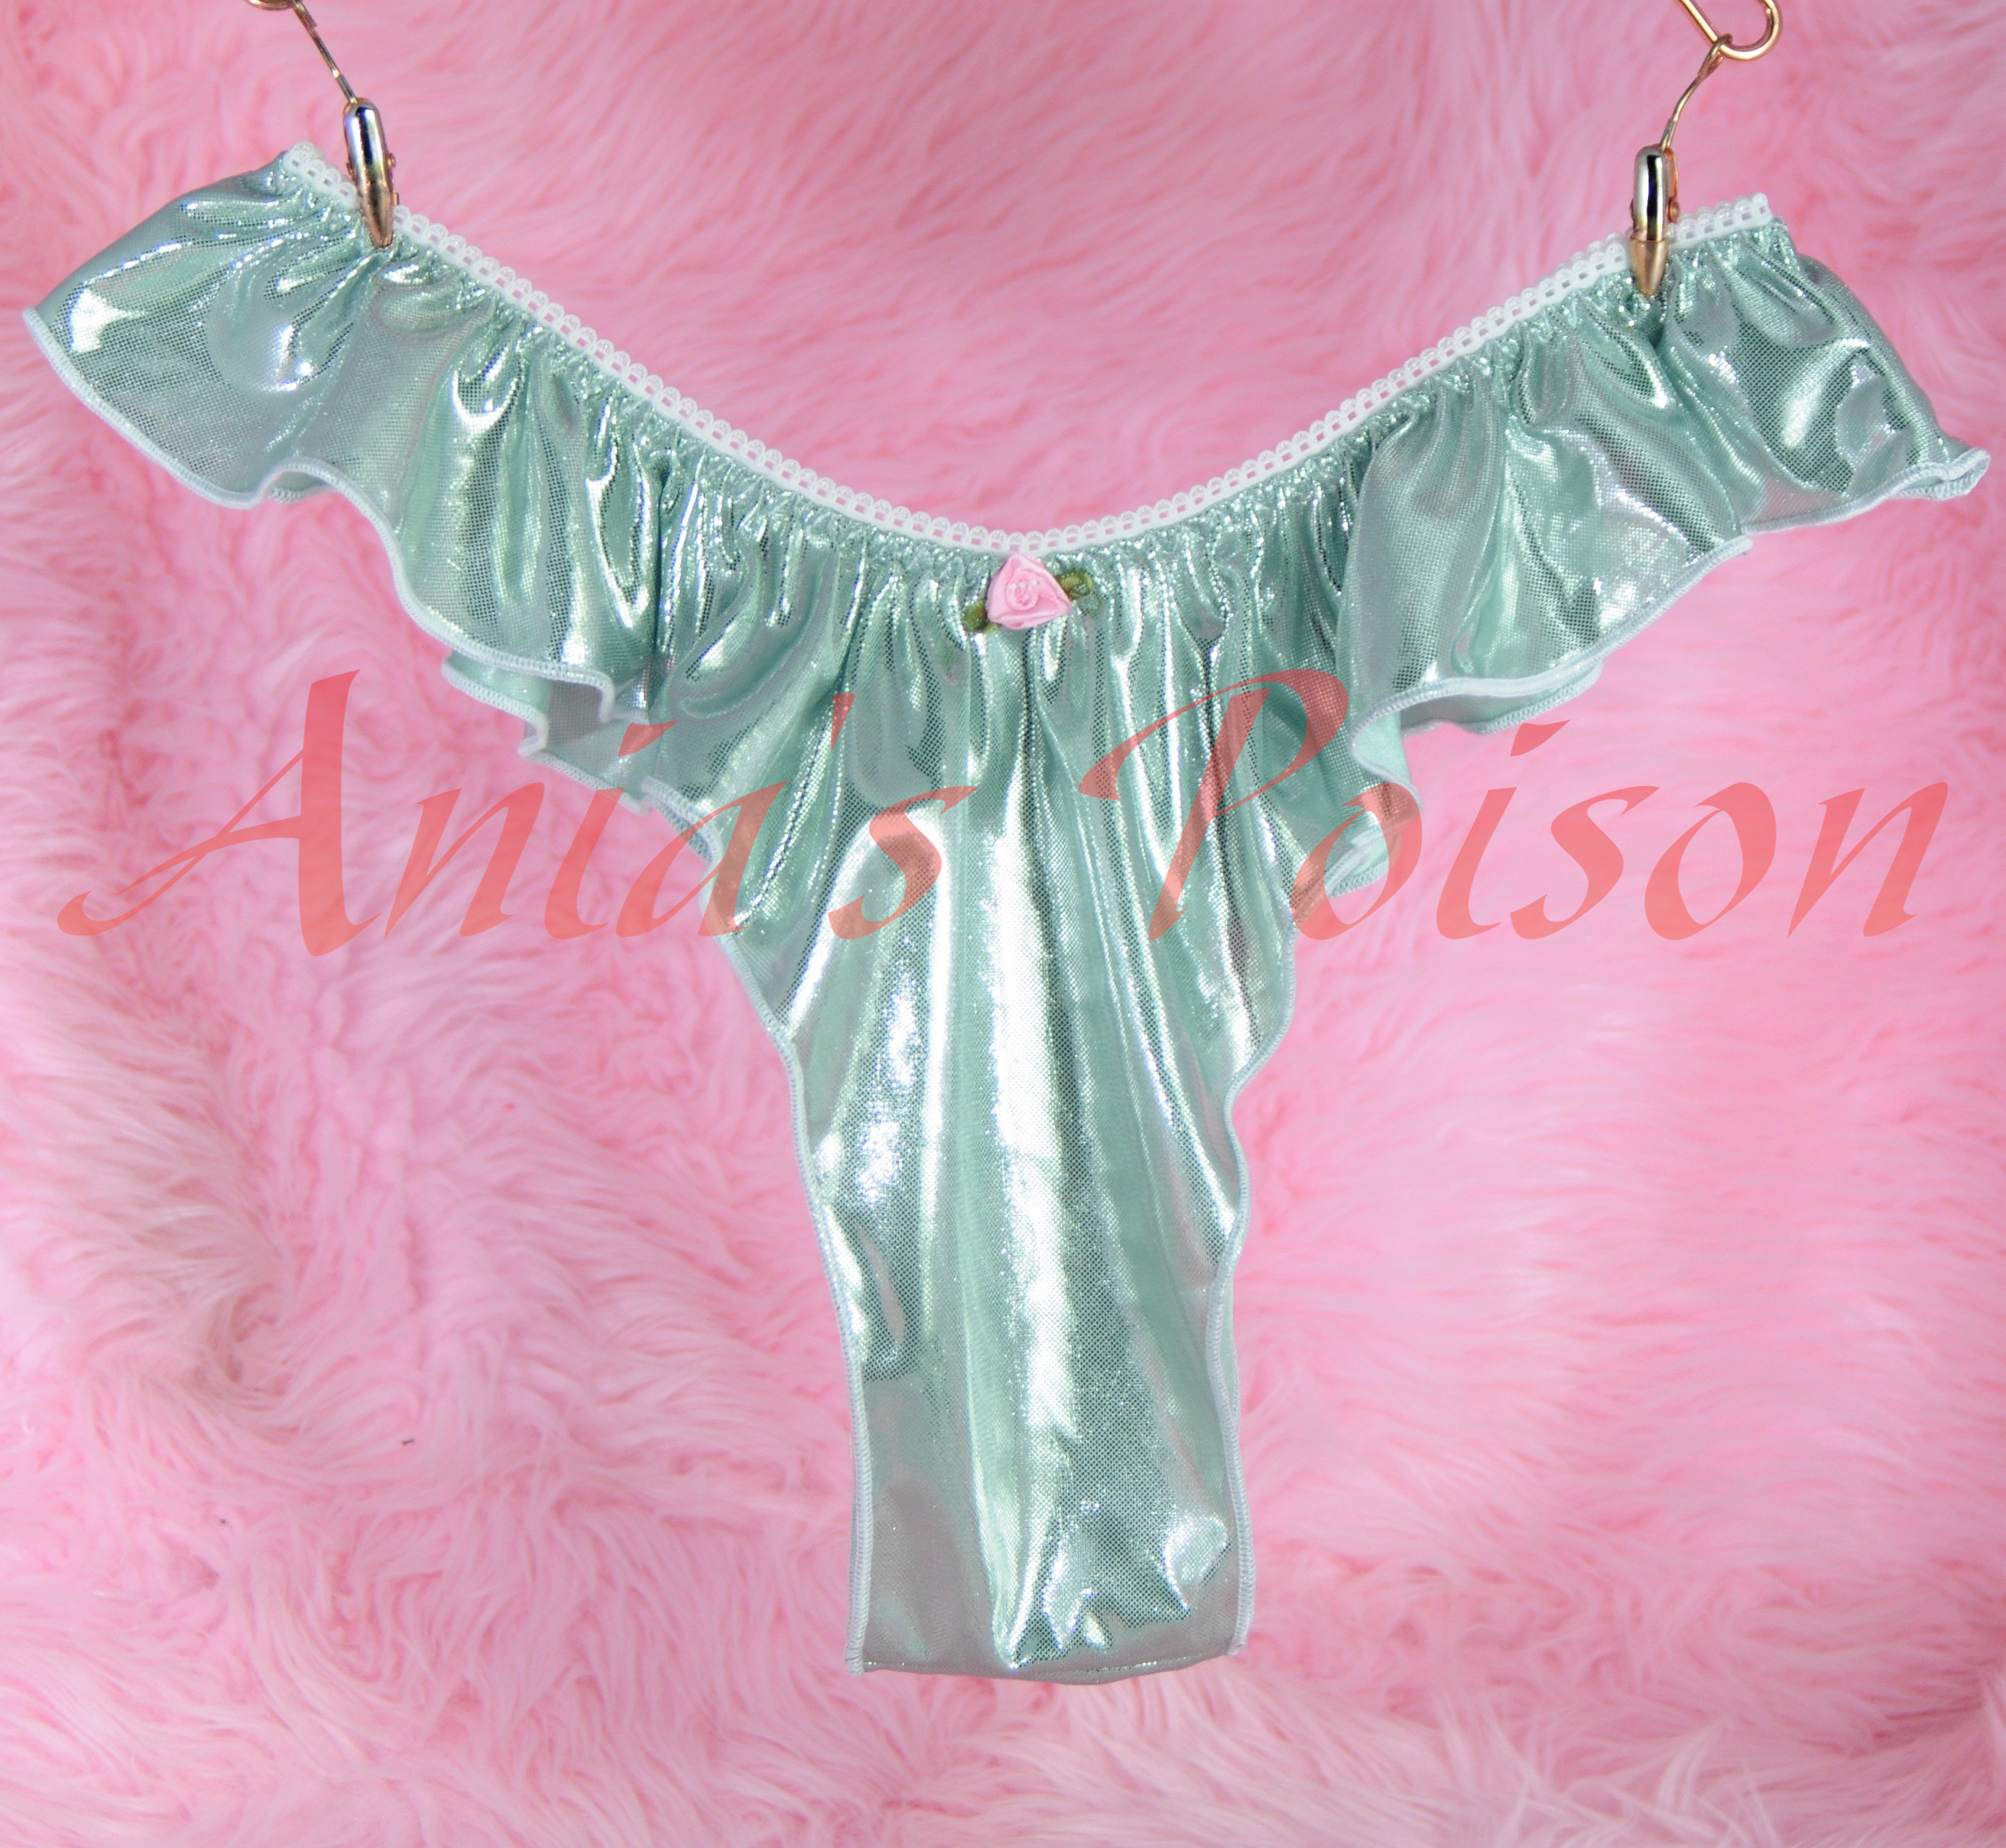 Teal Green satin panties shiny wet look ladies Brazilian Flutter sissy S-XXL